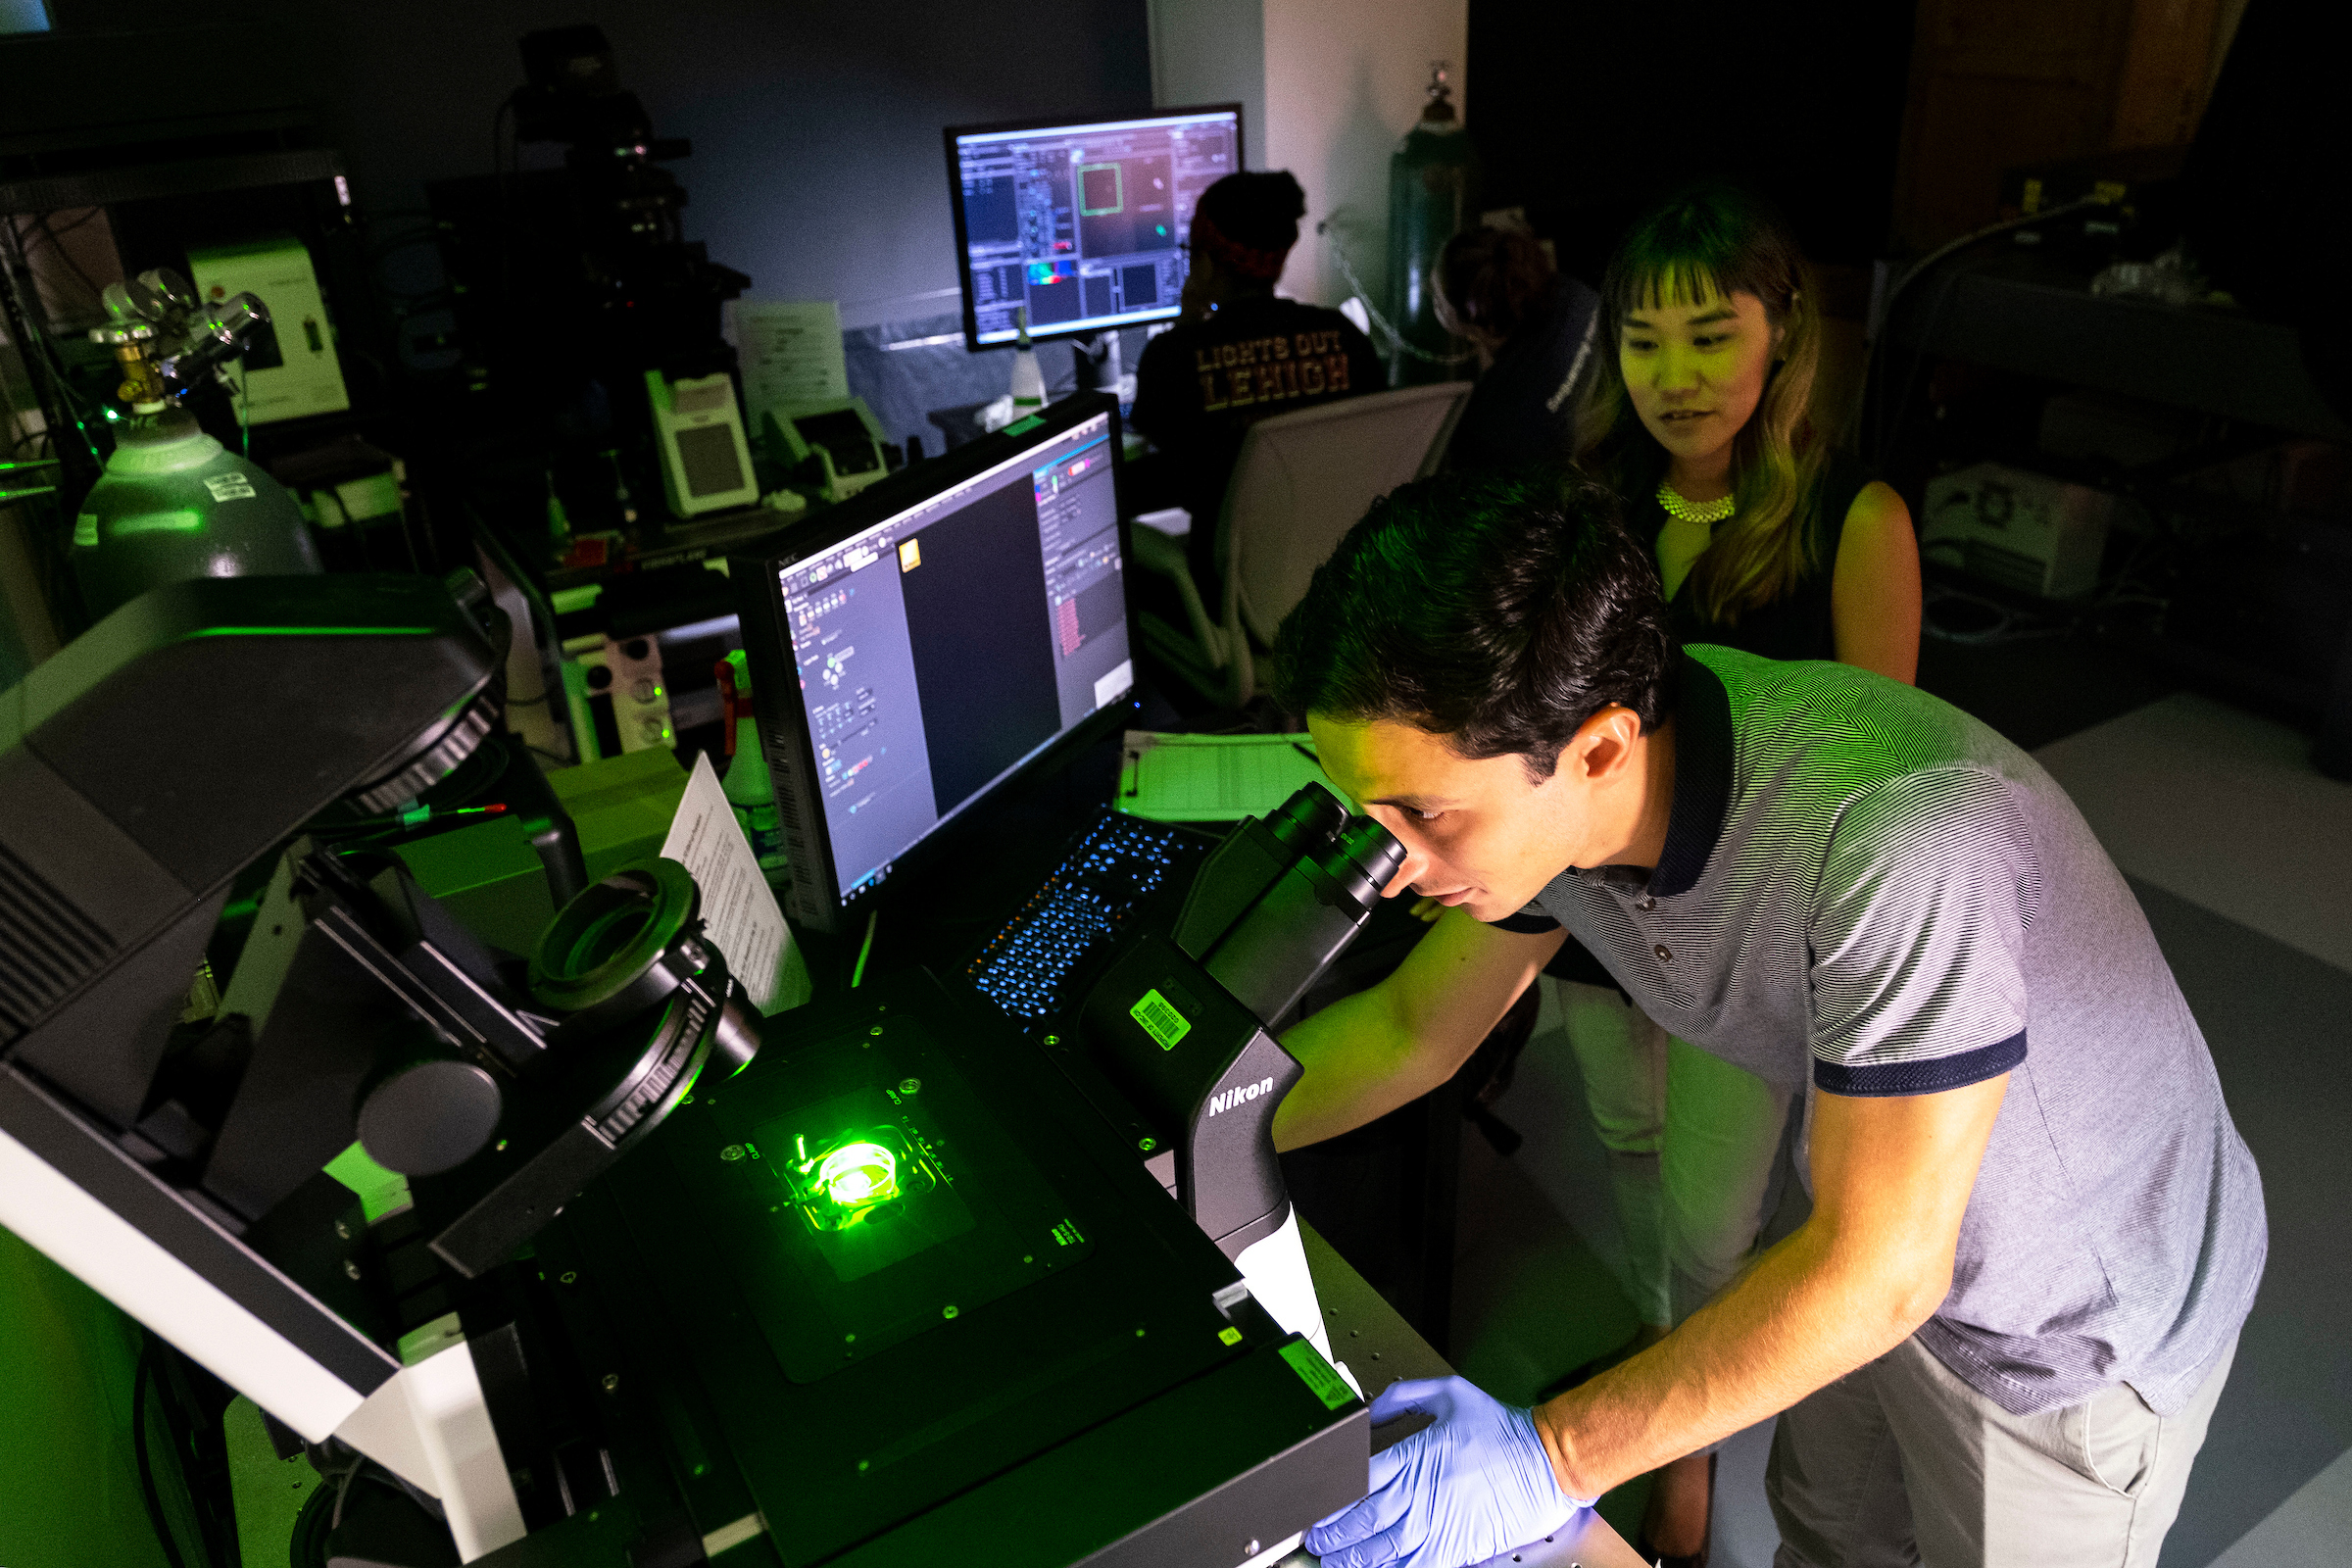 Researchers look through microscopes at a large computer setup.